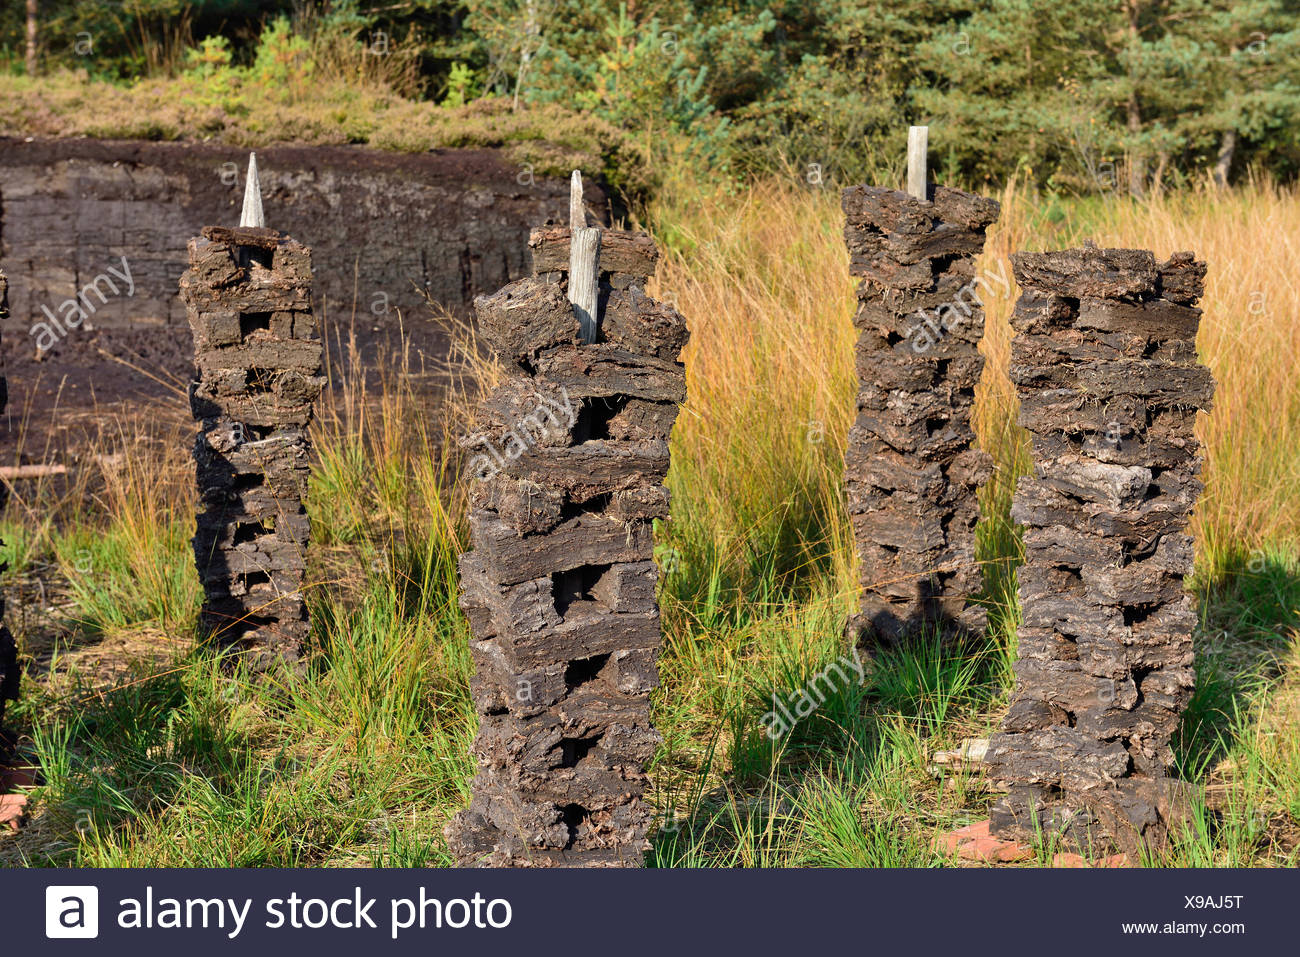 Stacks of peat sods left or drying in the traditional manner, Grundbeckenmoor Rosenheim, near Raubling, Upper Bavaria, Bavaria - Stock Image